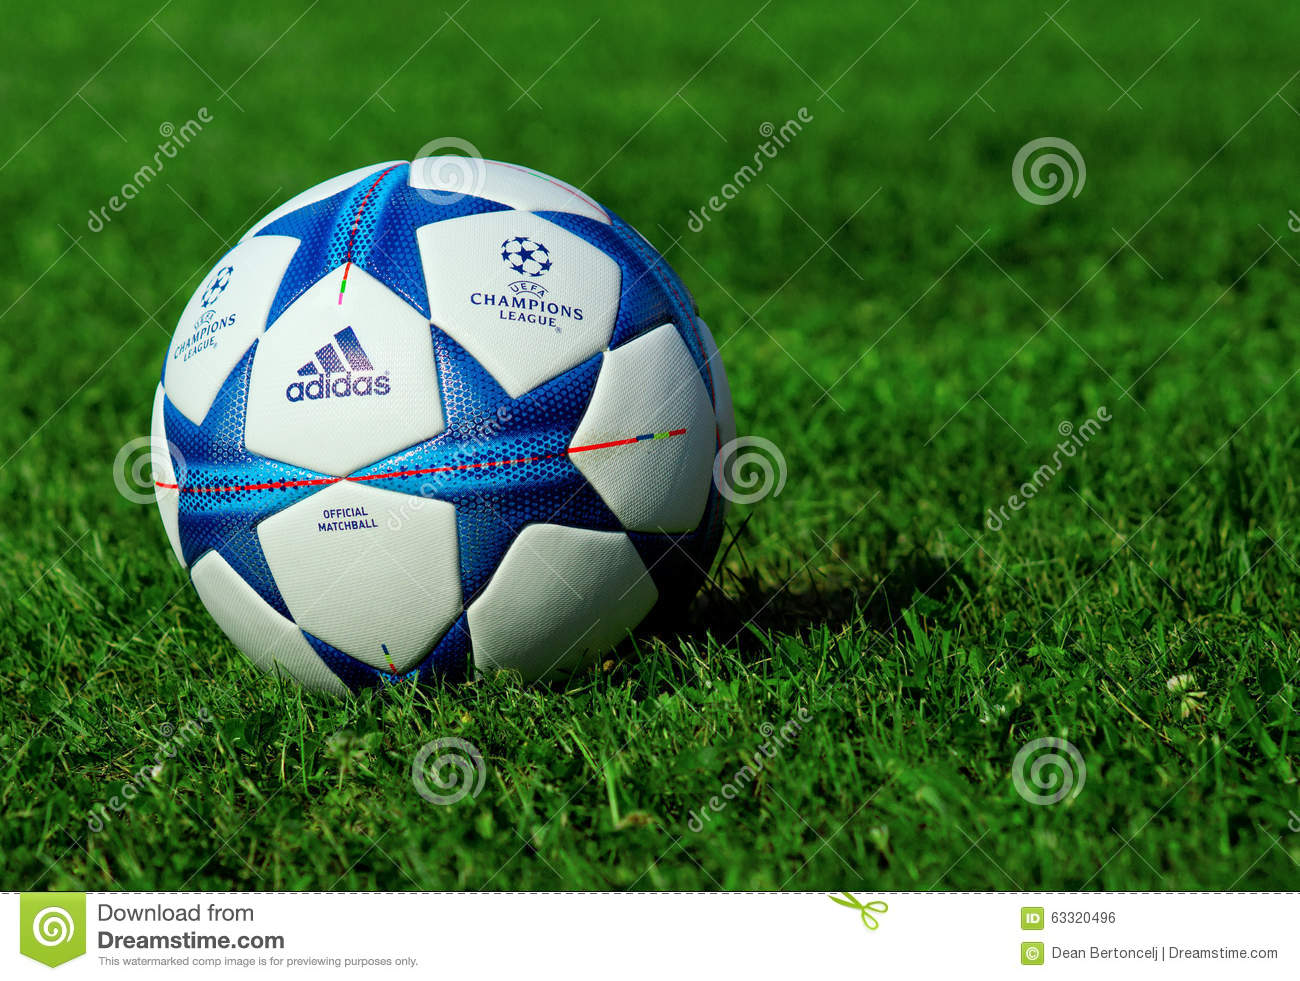 Champions league ball editorial photo. Image of 2016 ...